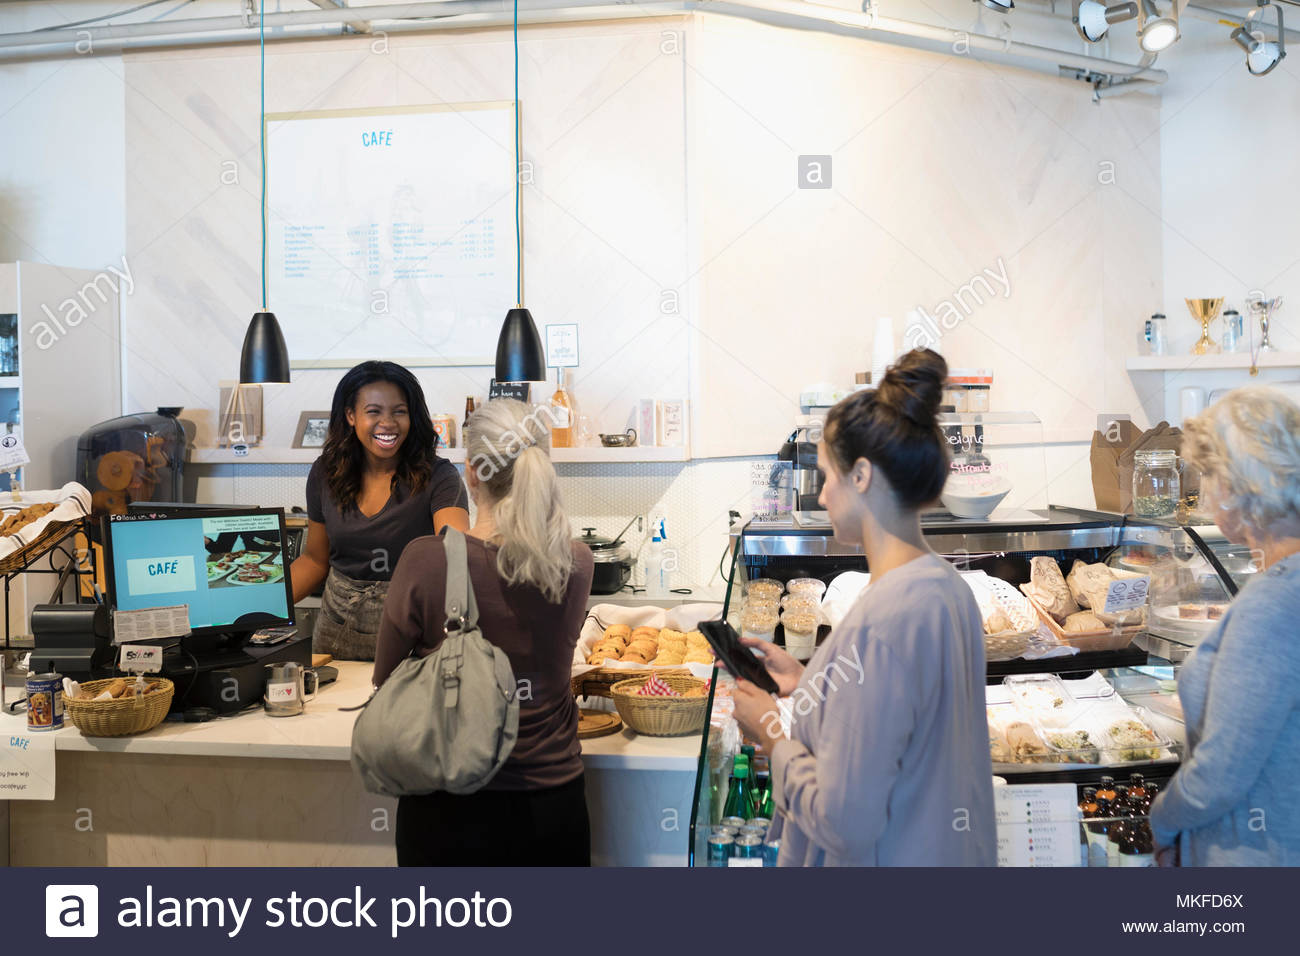 Female worker helping customers in bakery - Stock Image